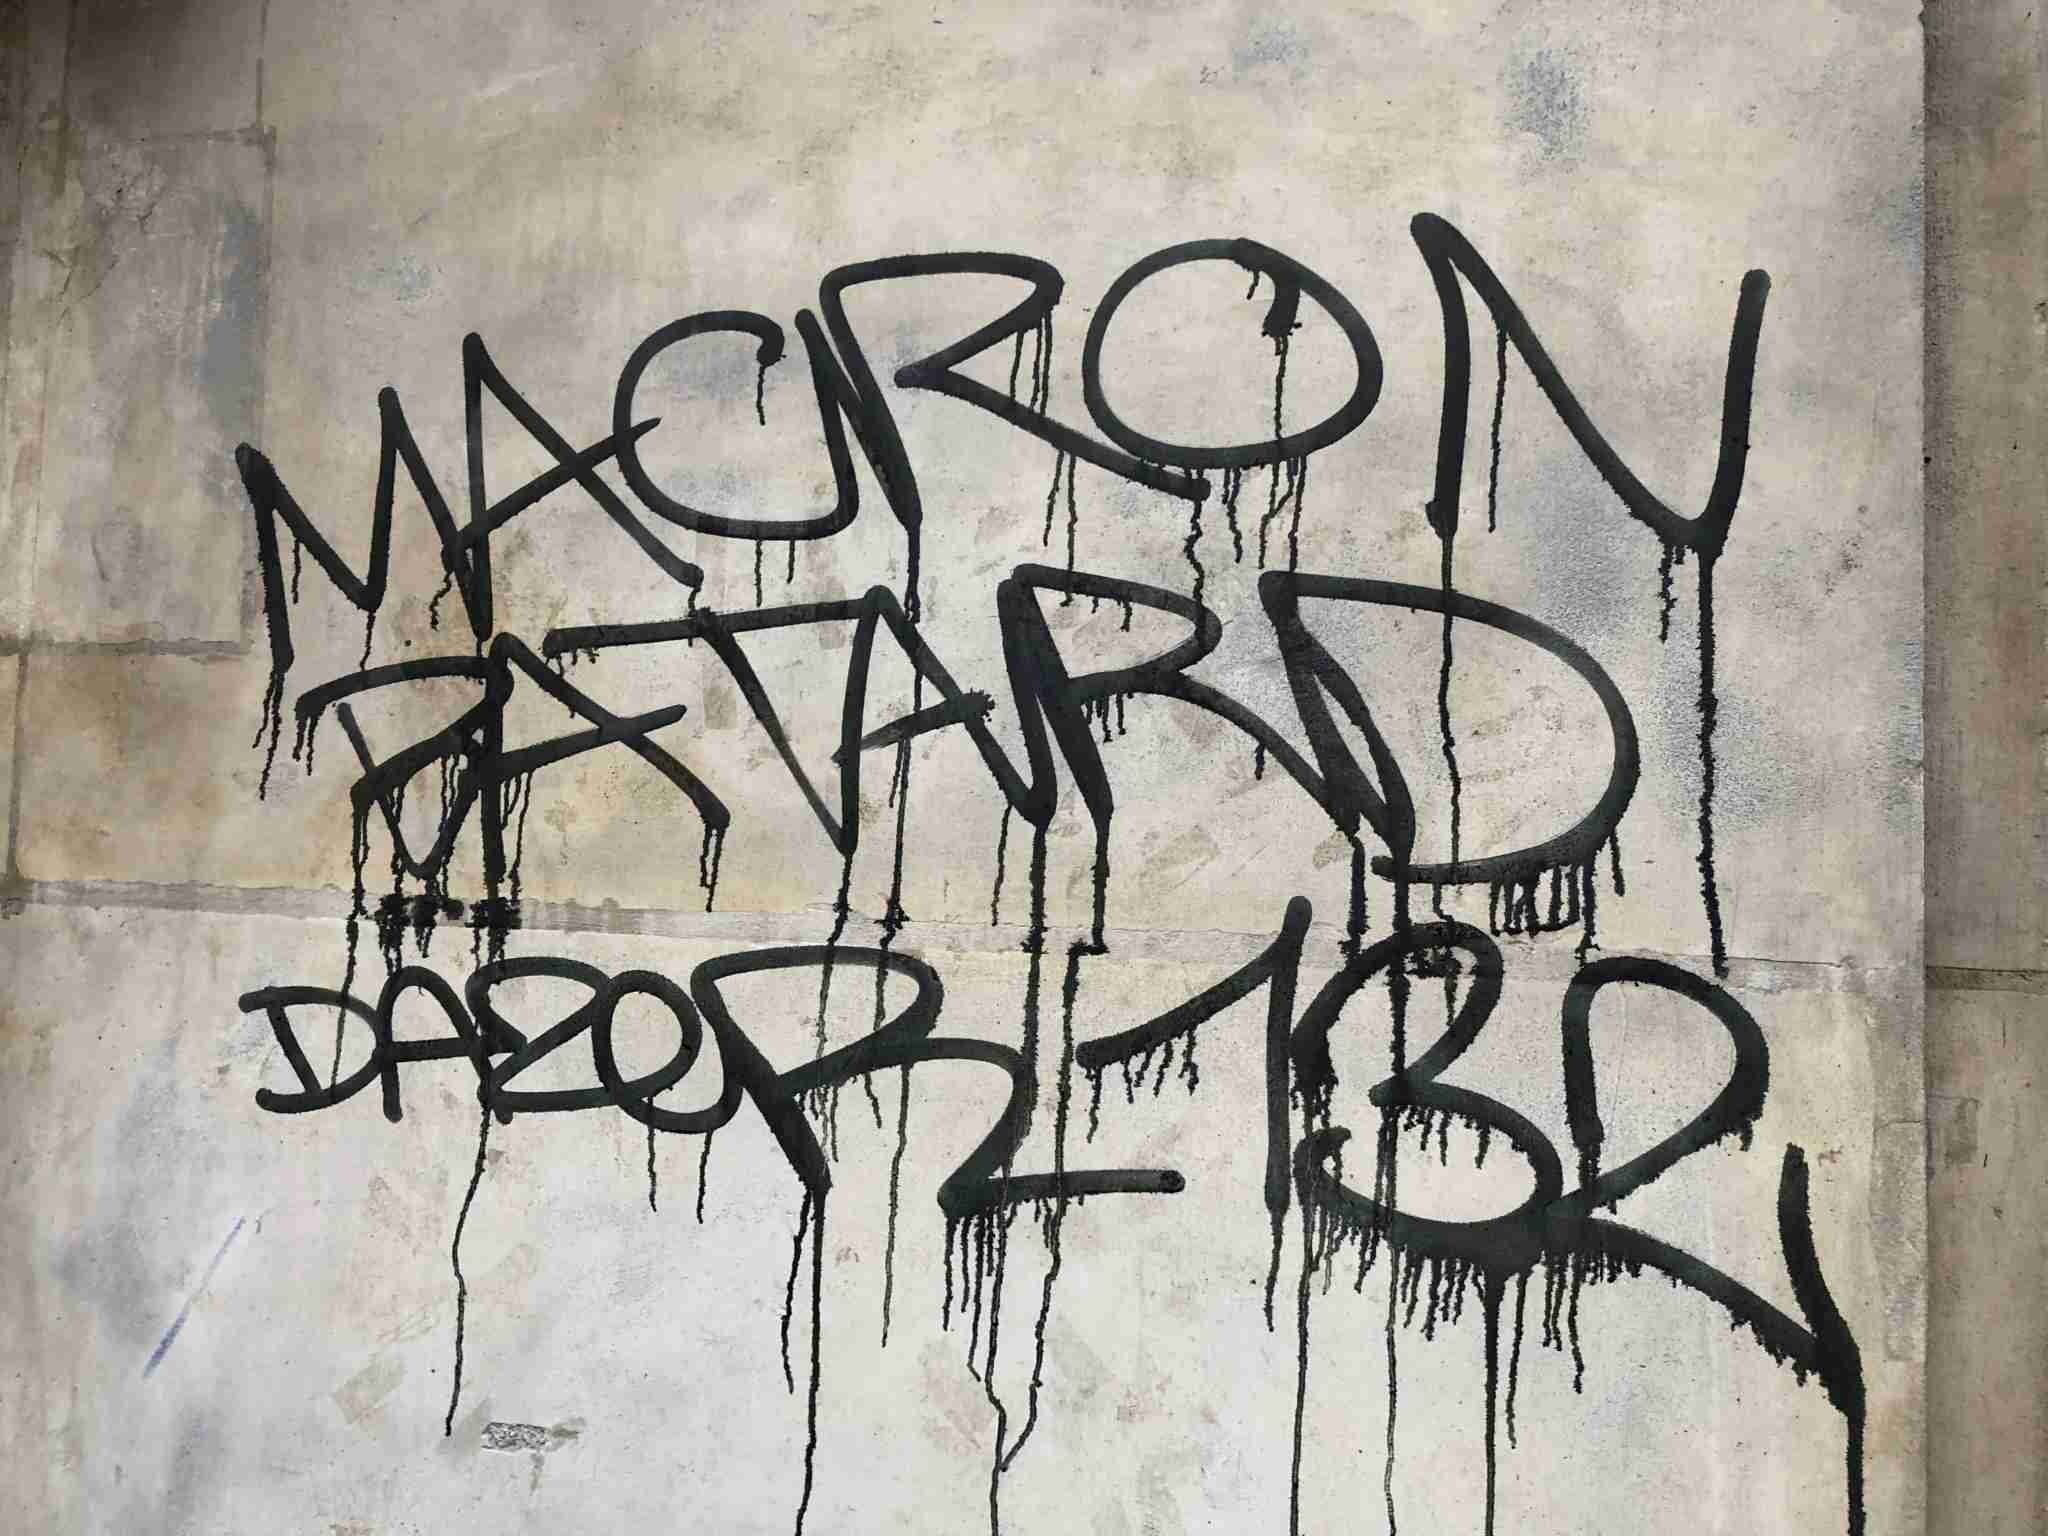 Anti-Macron graffiti in Paris following a day of violent demonstrations (Image via Edward Pizazrello)